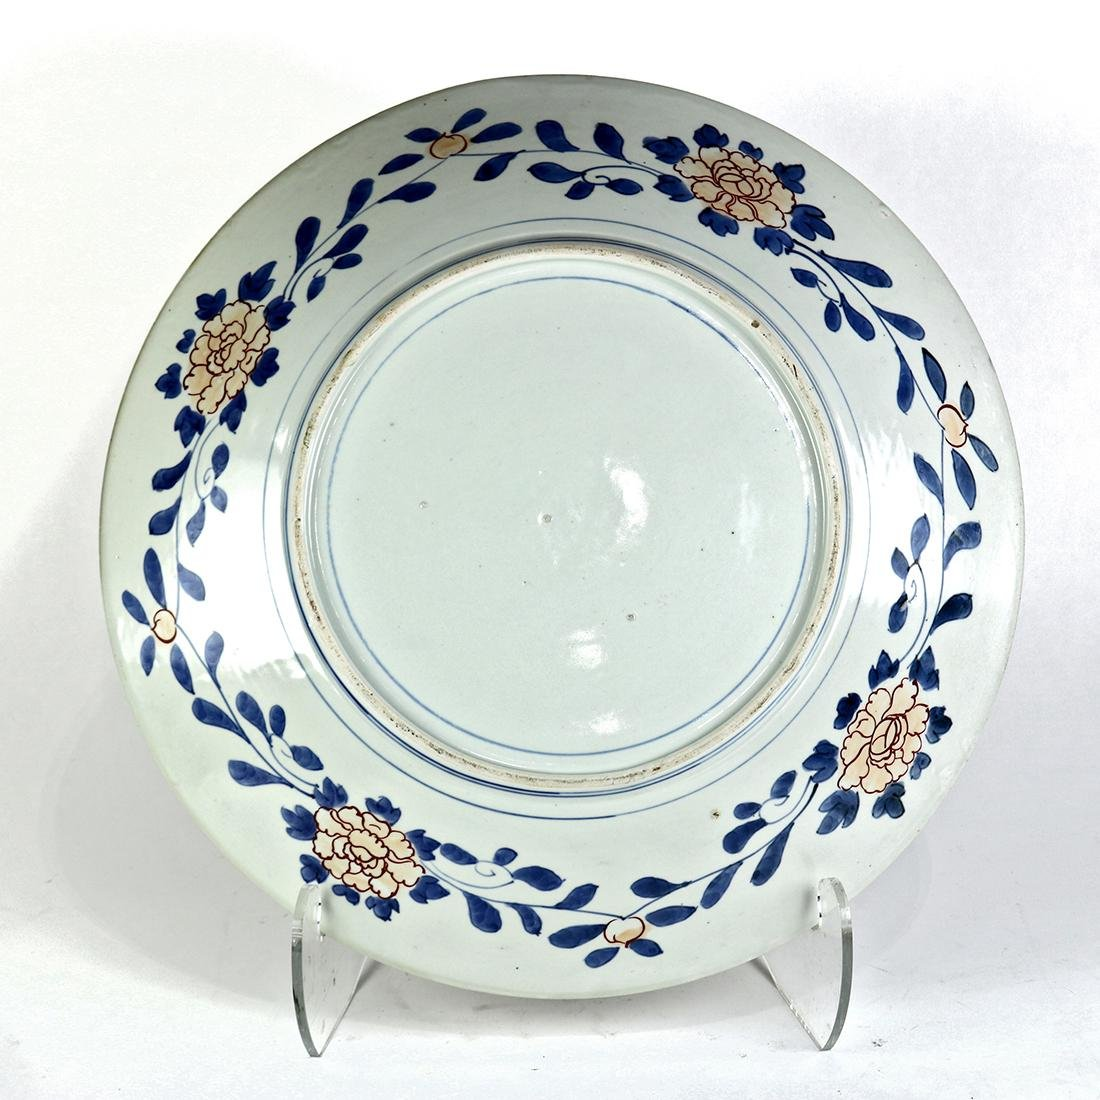 Japanese Imari Porcelain Charger, Three Friends of - 2